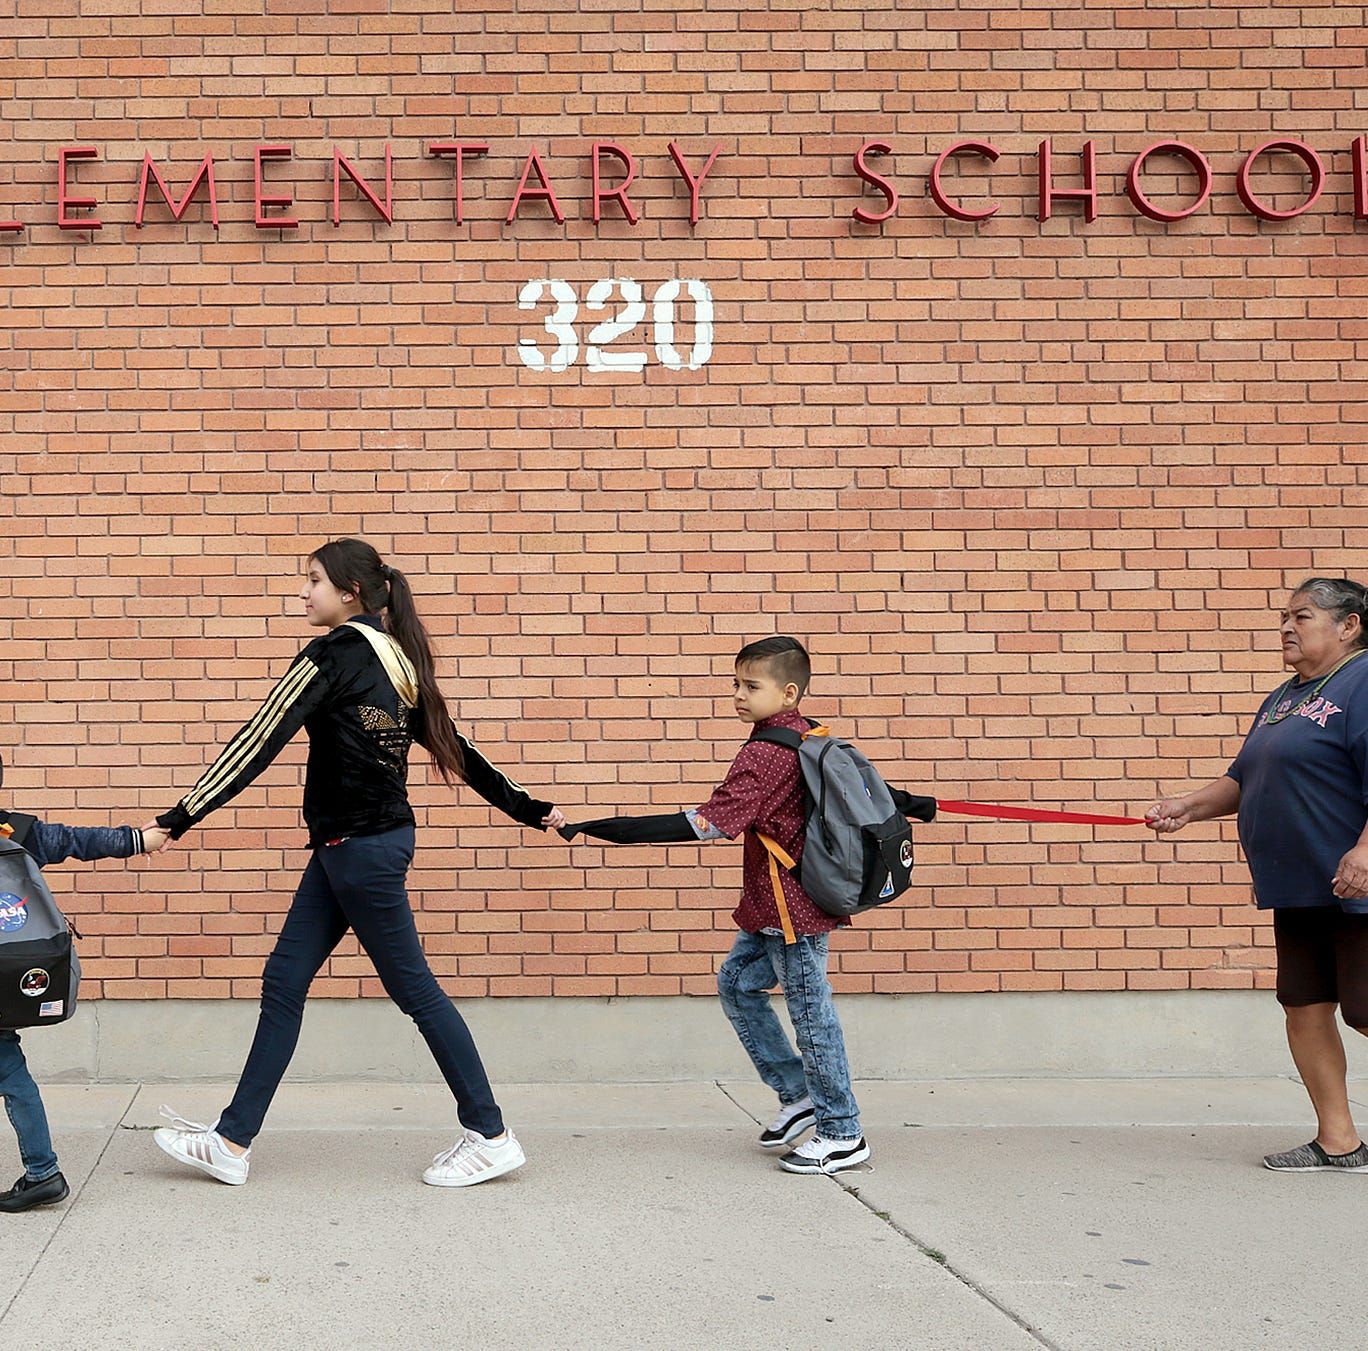 Allow students, teachers, staff to stay at Beall school, Hope Border Institute urges EPISD